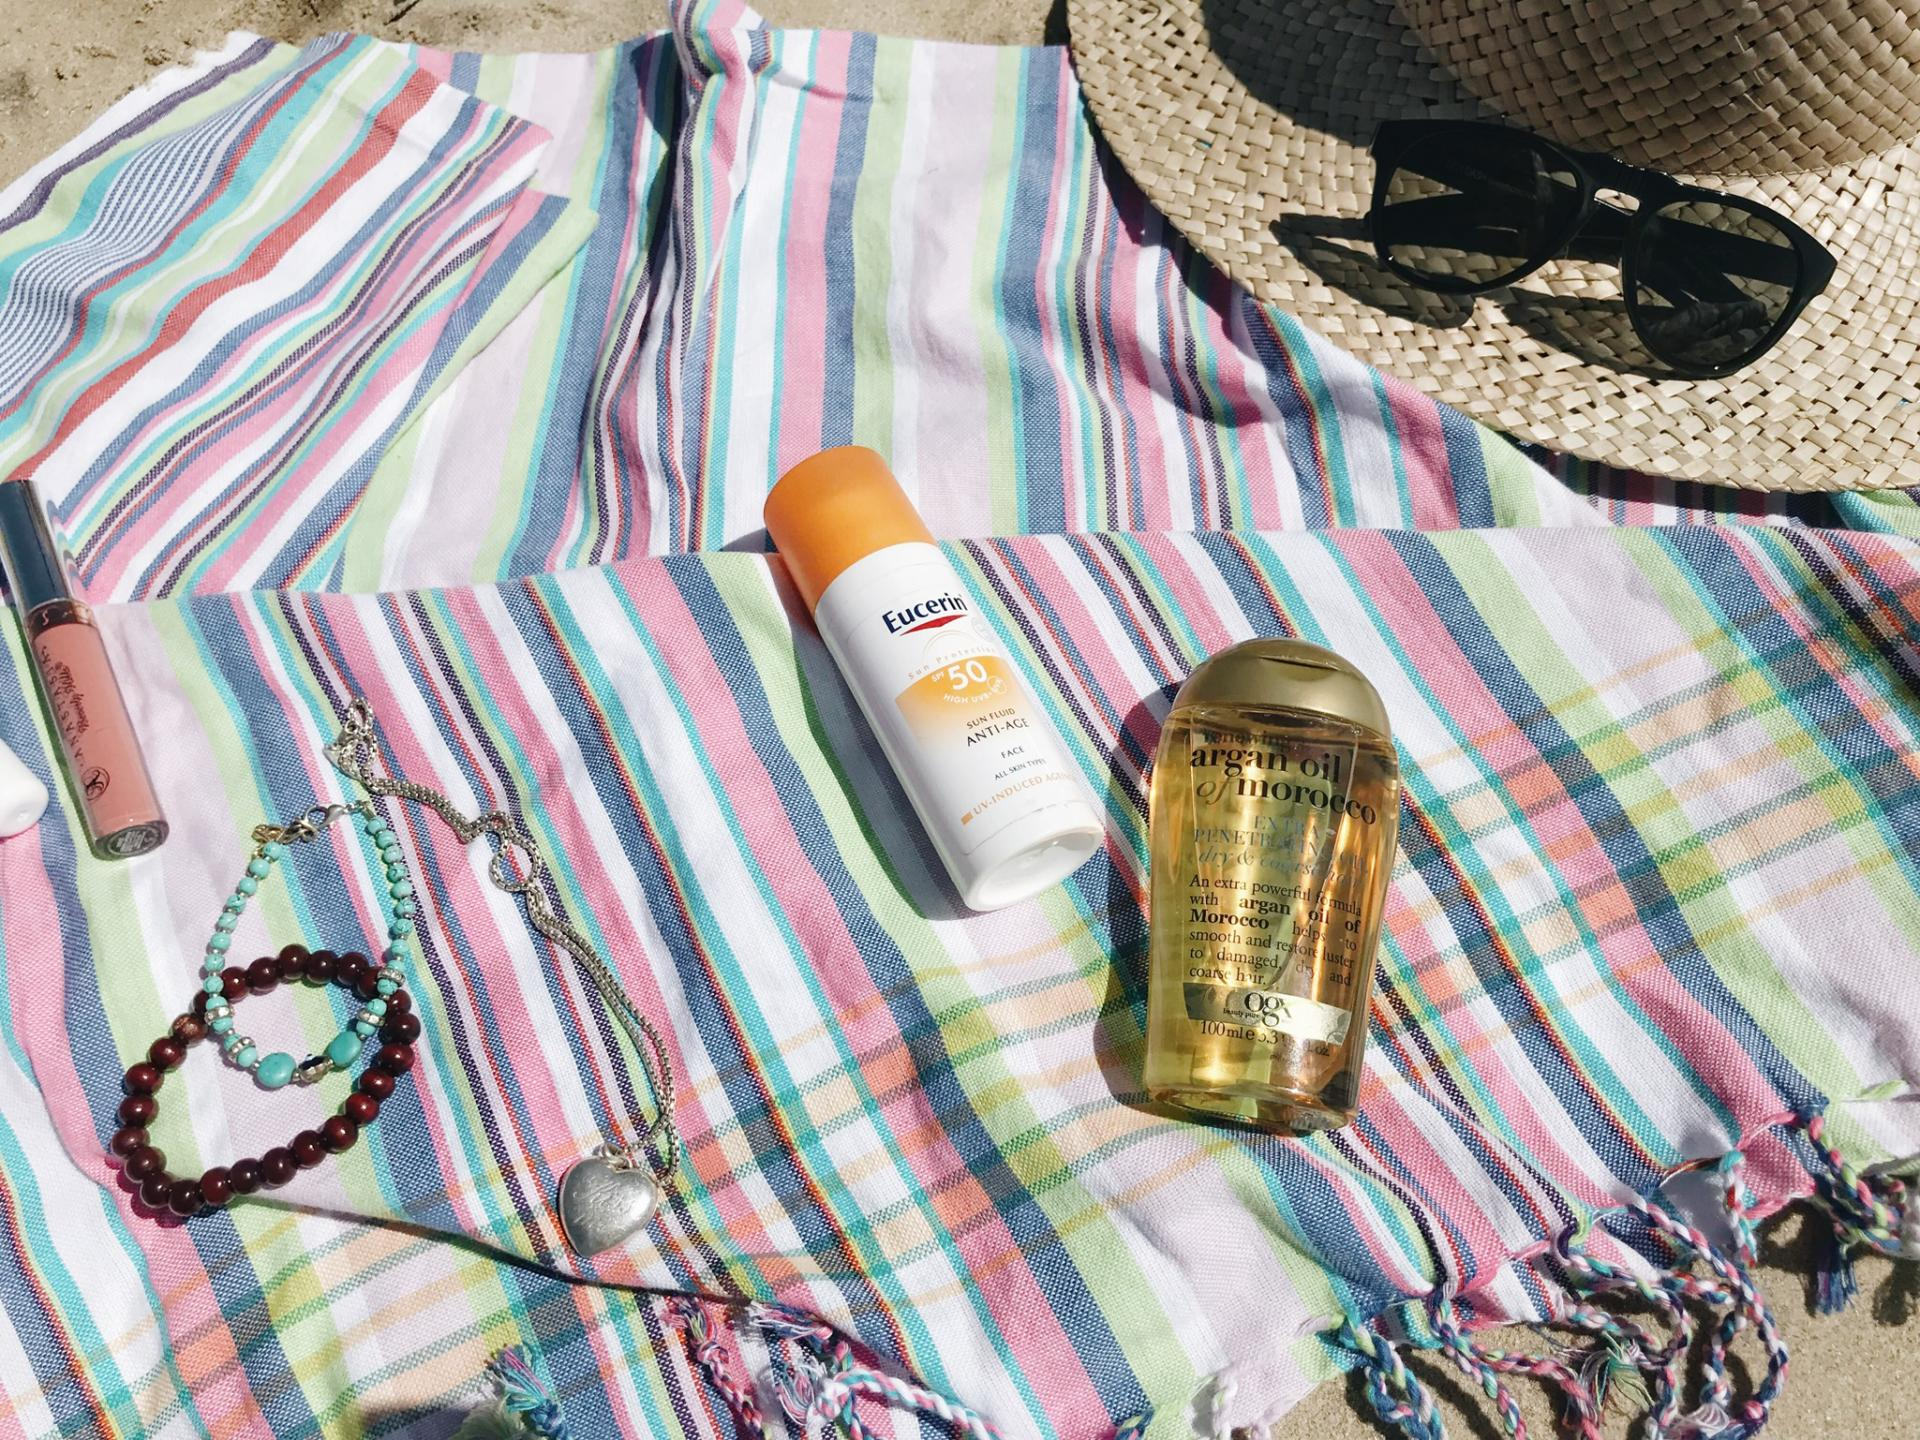 Close up of the sunscreen and argan oil